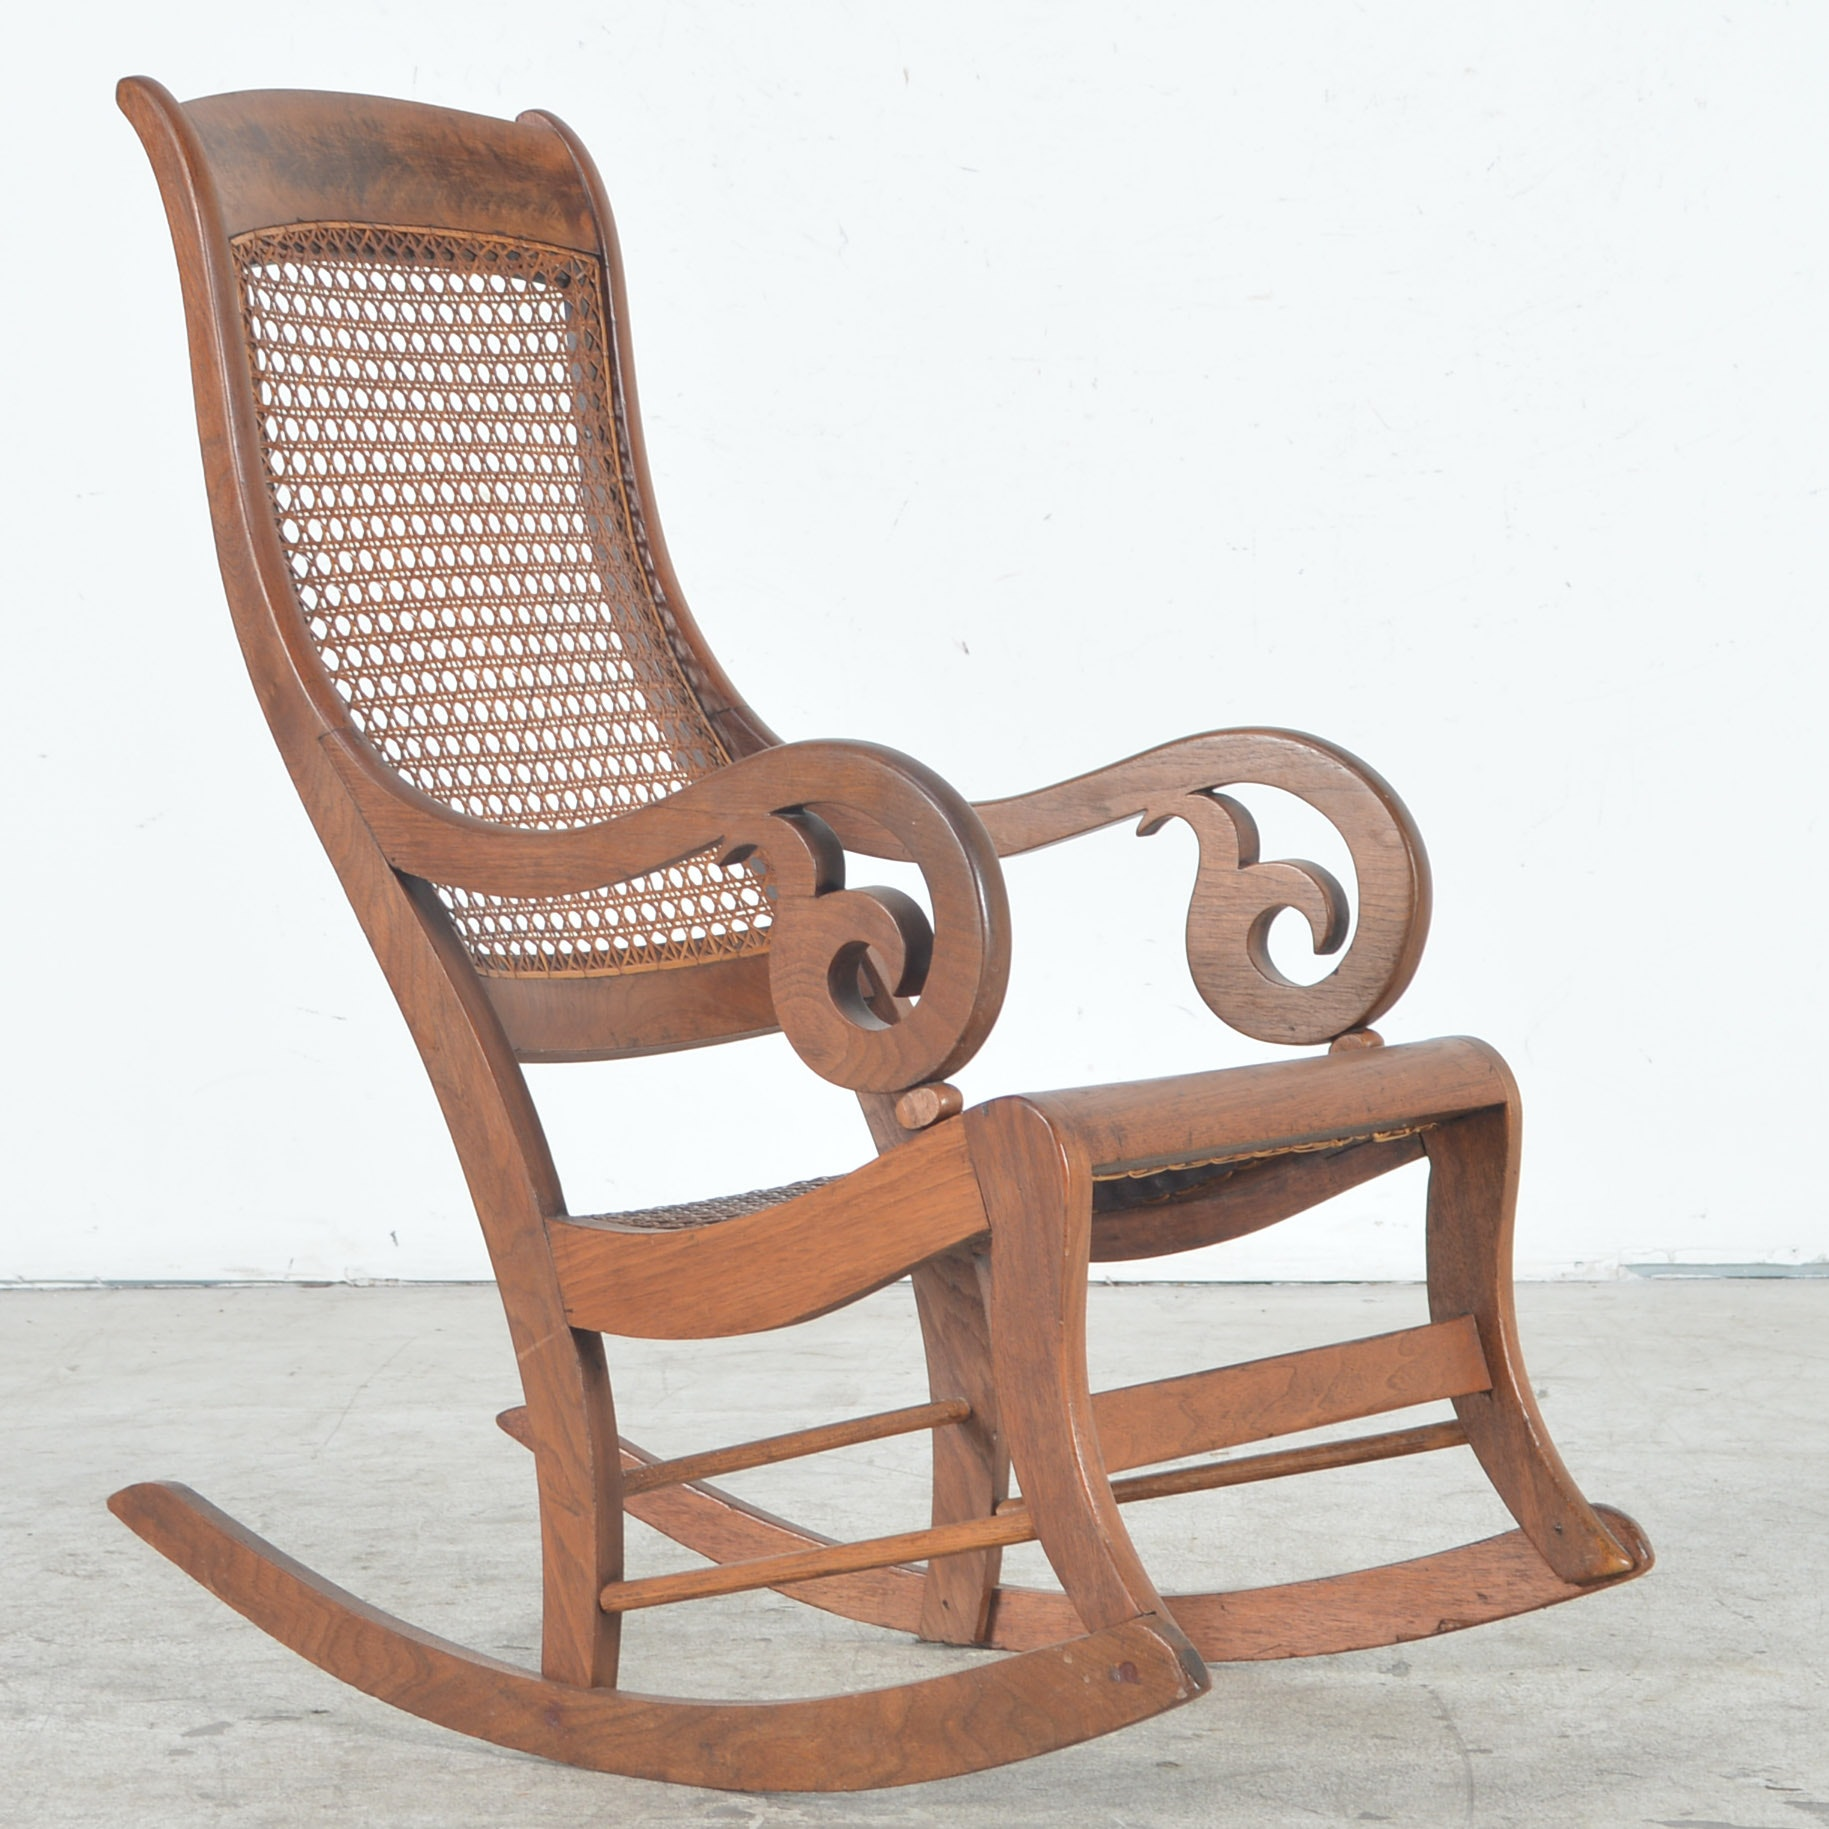 Genial Antique Rocking Chair With Cane Seat And Back ...